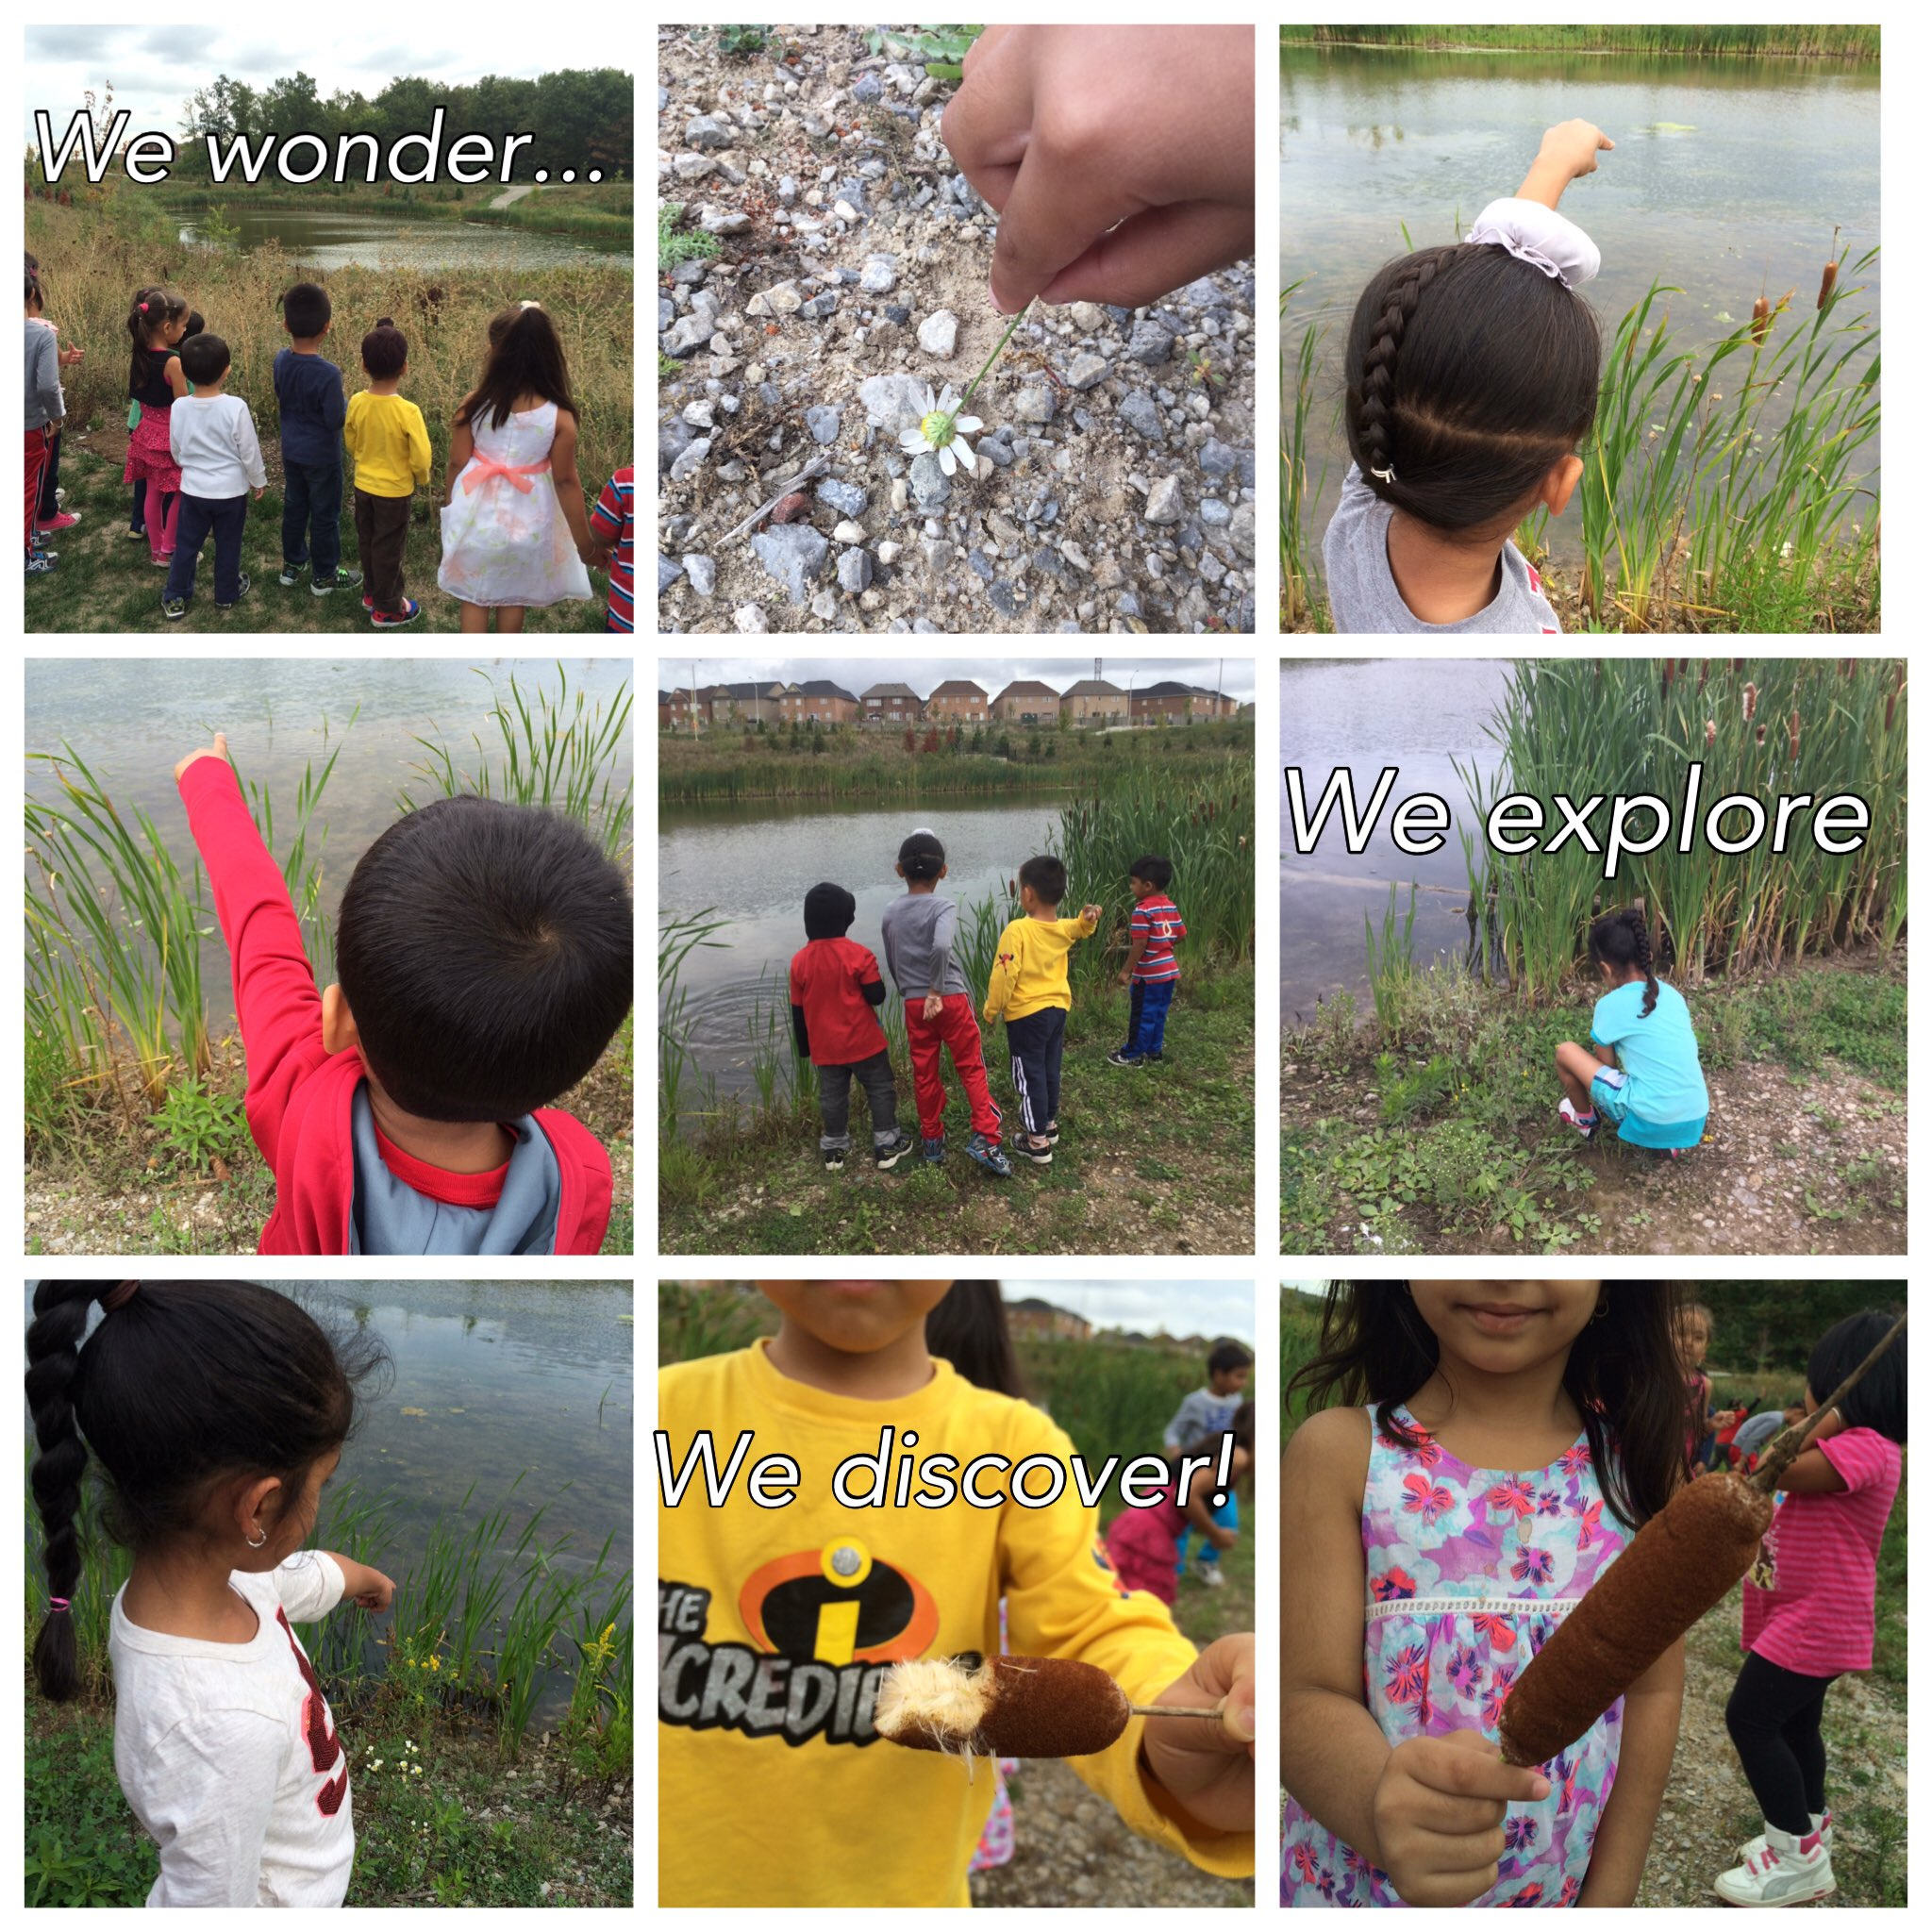 """Thumbnail for Twitter Chat on #EnviroEd """"Wandering Wonders - Exploring Your Community"""" 09/14/16"""